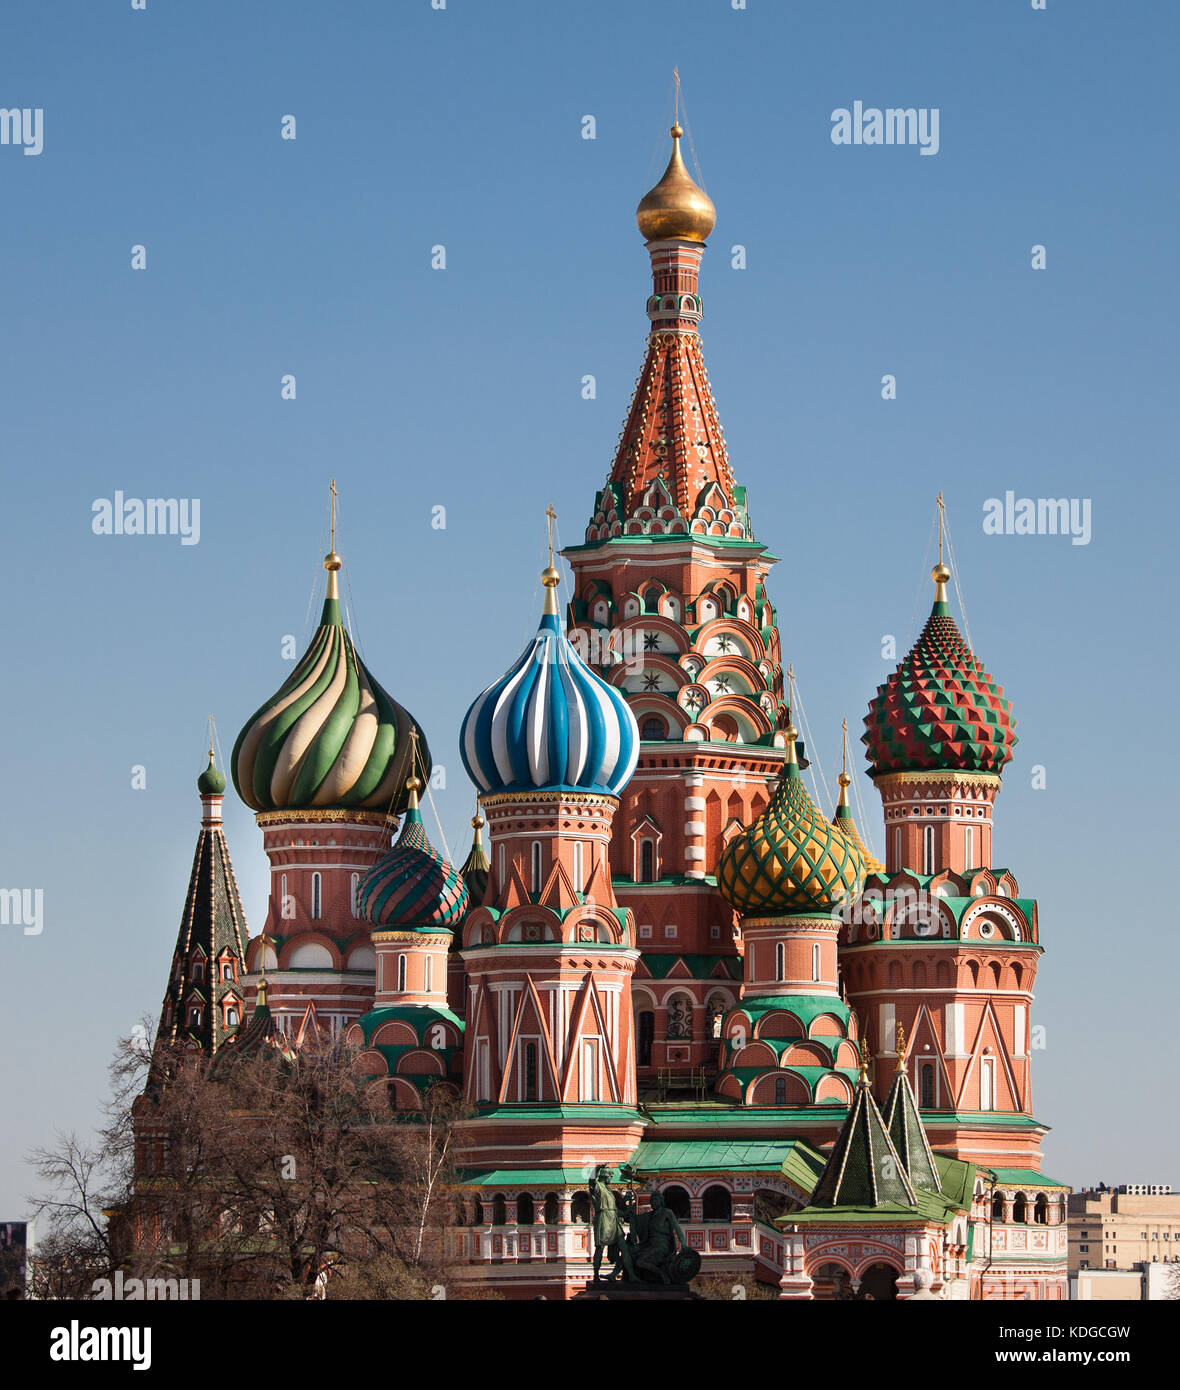 St Basils Cathedral In Moscow Stock Photos \u0026 St Basils Cathedral ...